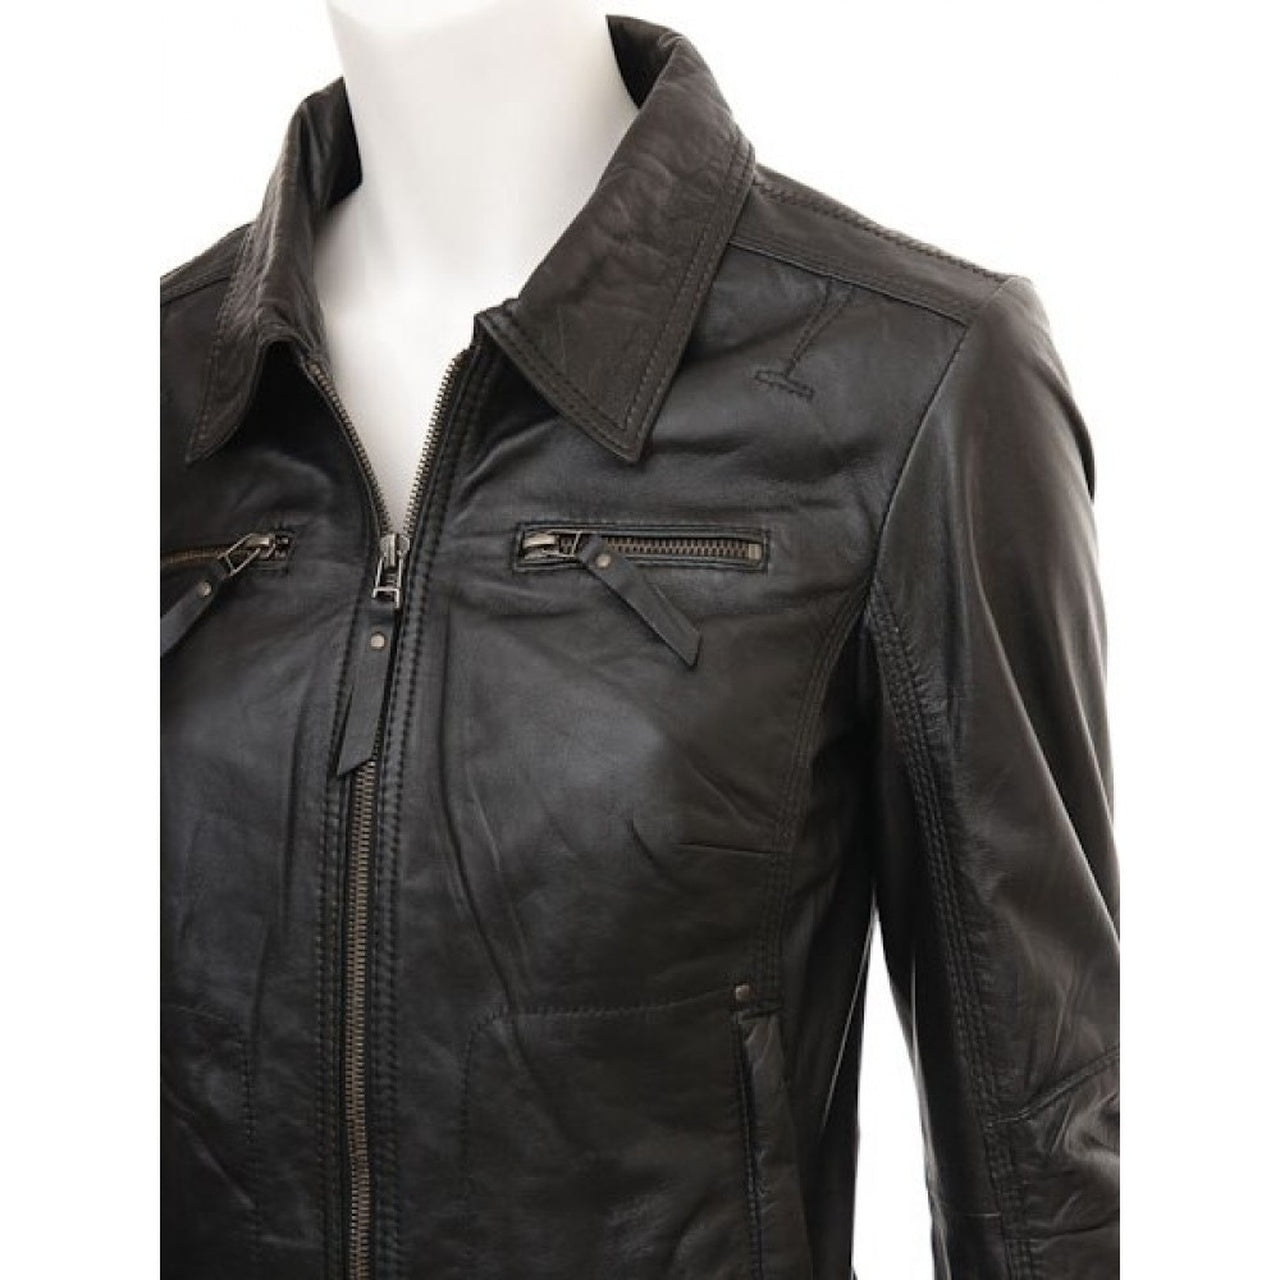 Brown Biker Real Lambskin Leather Jacket - Leather Jacket